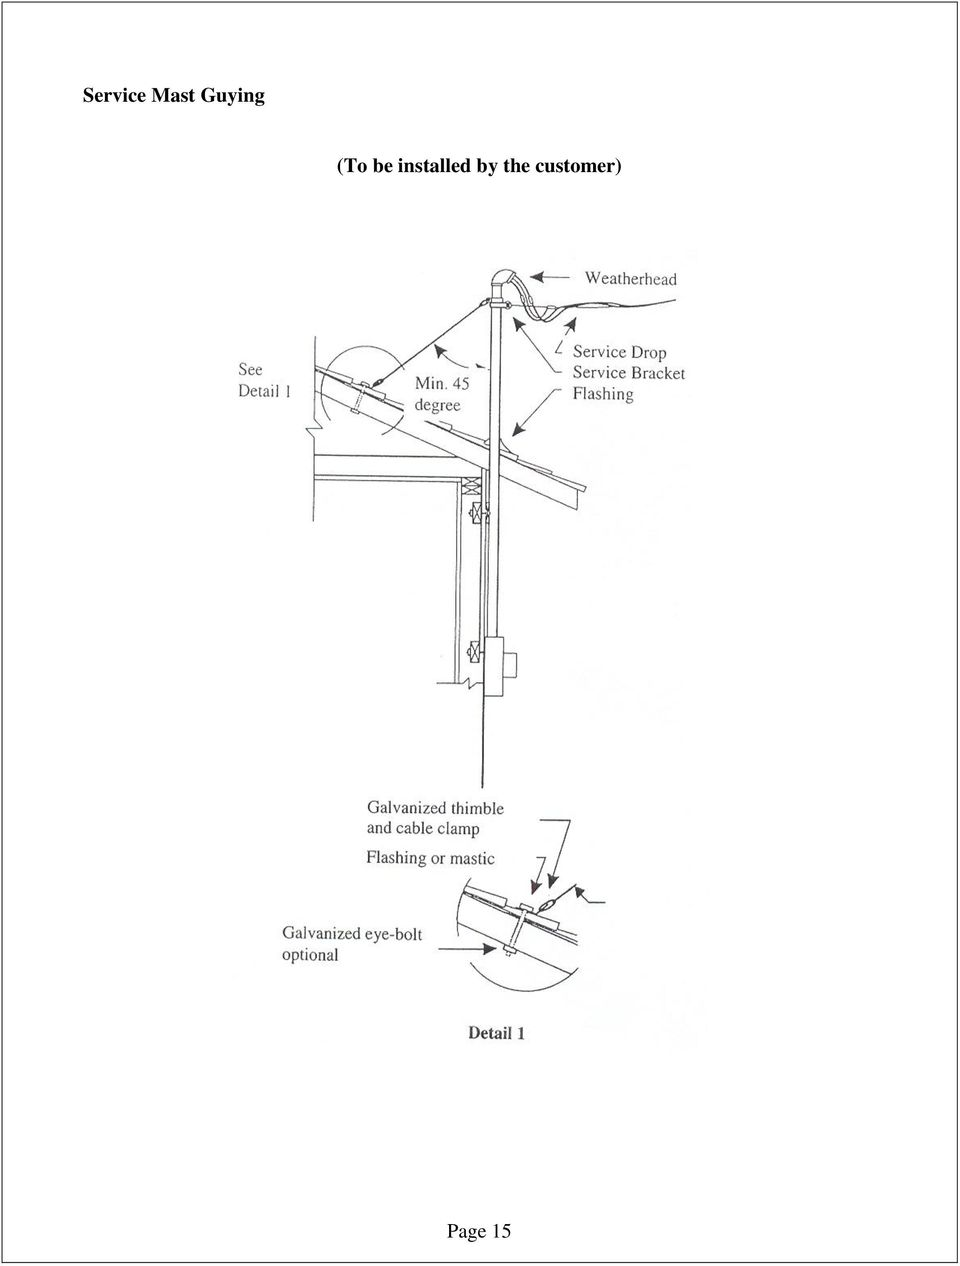 Service Entrance Requirements Manual Pdf Electrical Riser Diagram Additionally Panel 19 Three Phase 480 Volt Self Contained Meter Loop Not More Than 6 Is Allowed Between The Disconnect And Can 200 Amp 600